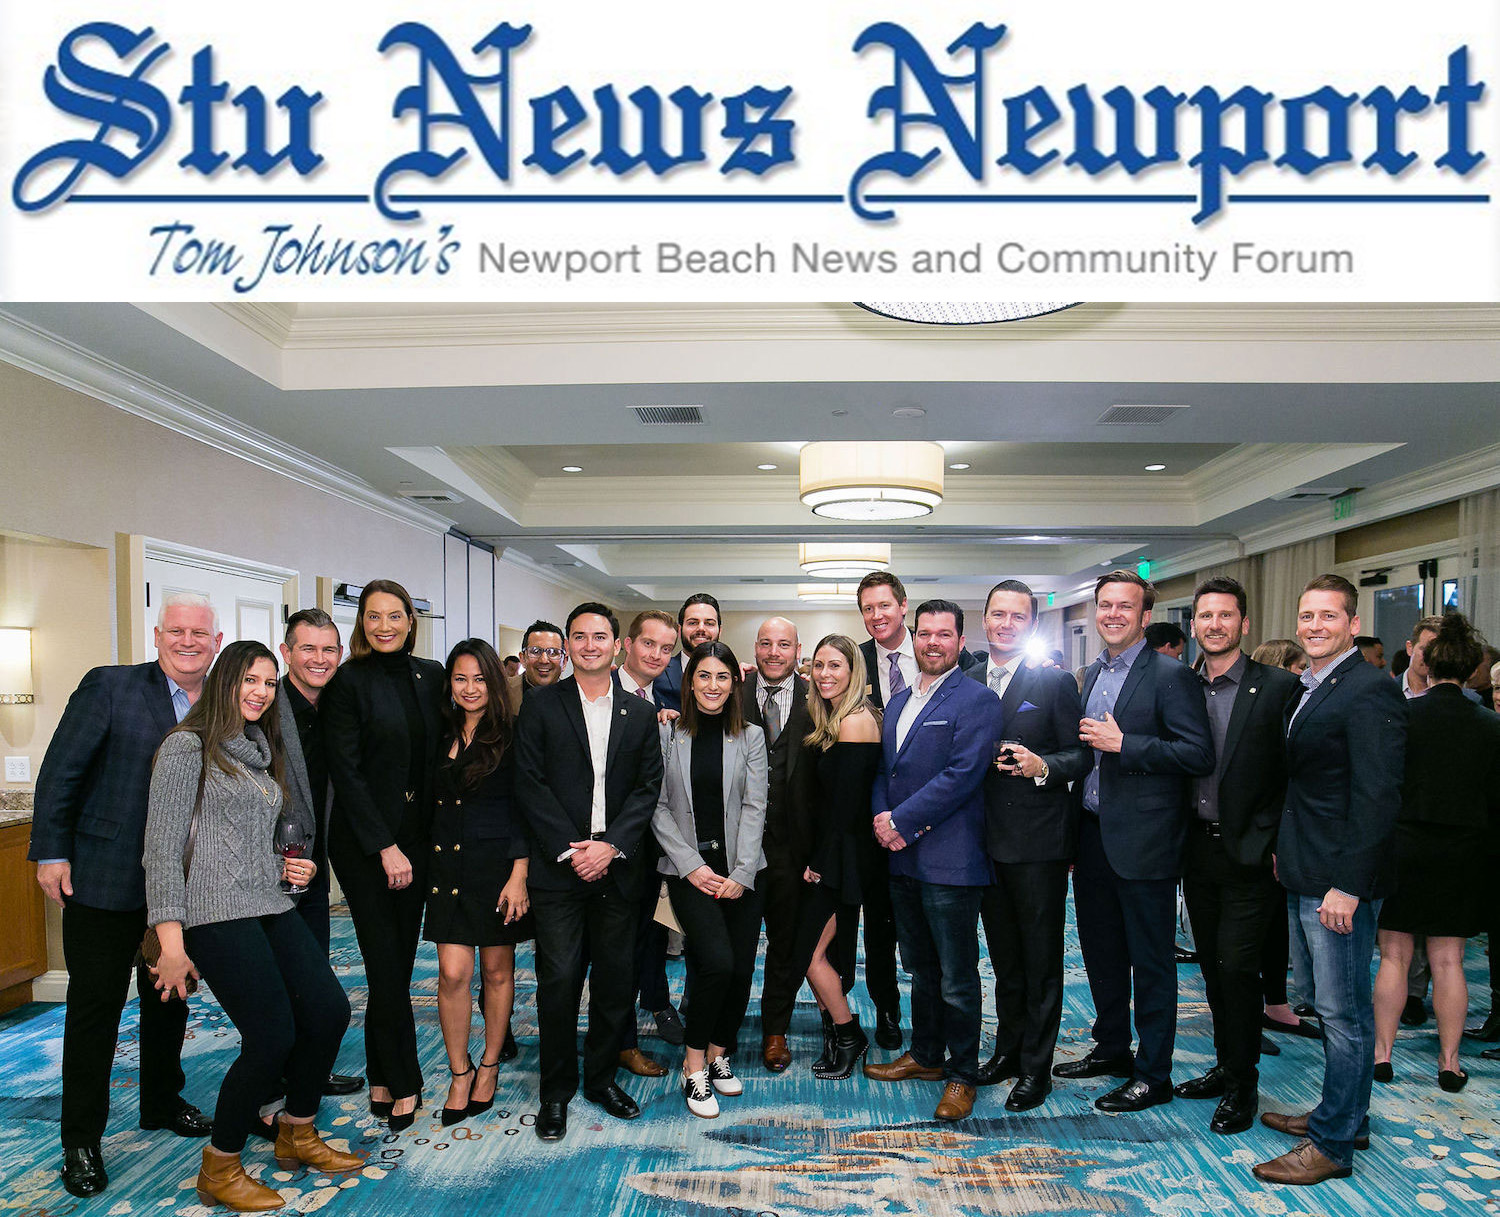 Board Members and Graduates of the Newport Beach Foundation. (Photo courtesy of the Newport Beach Foundation)